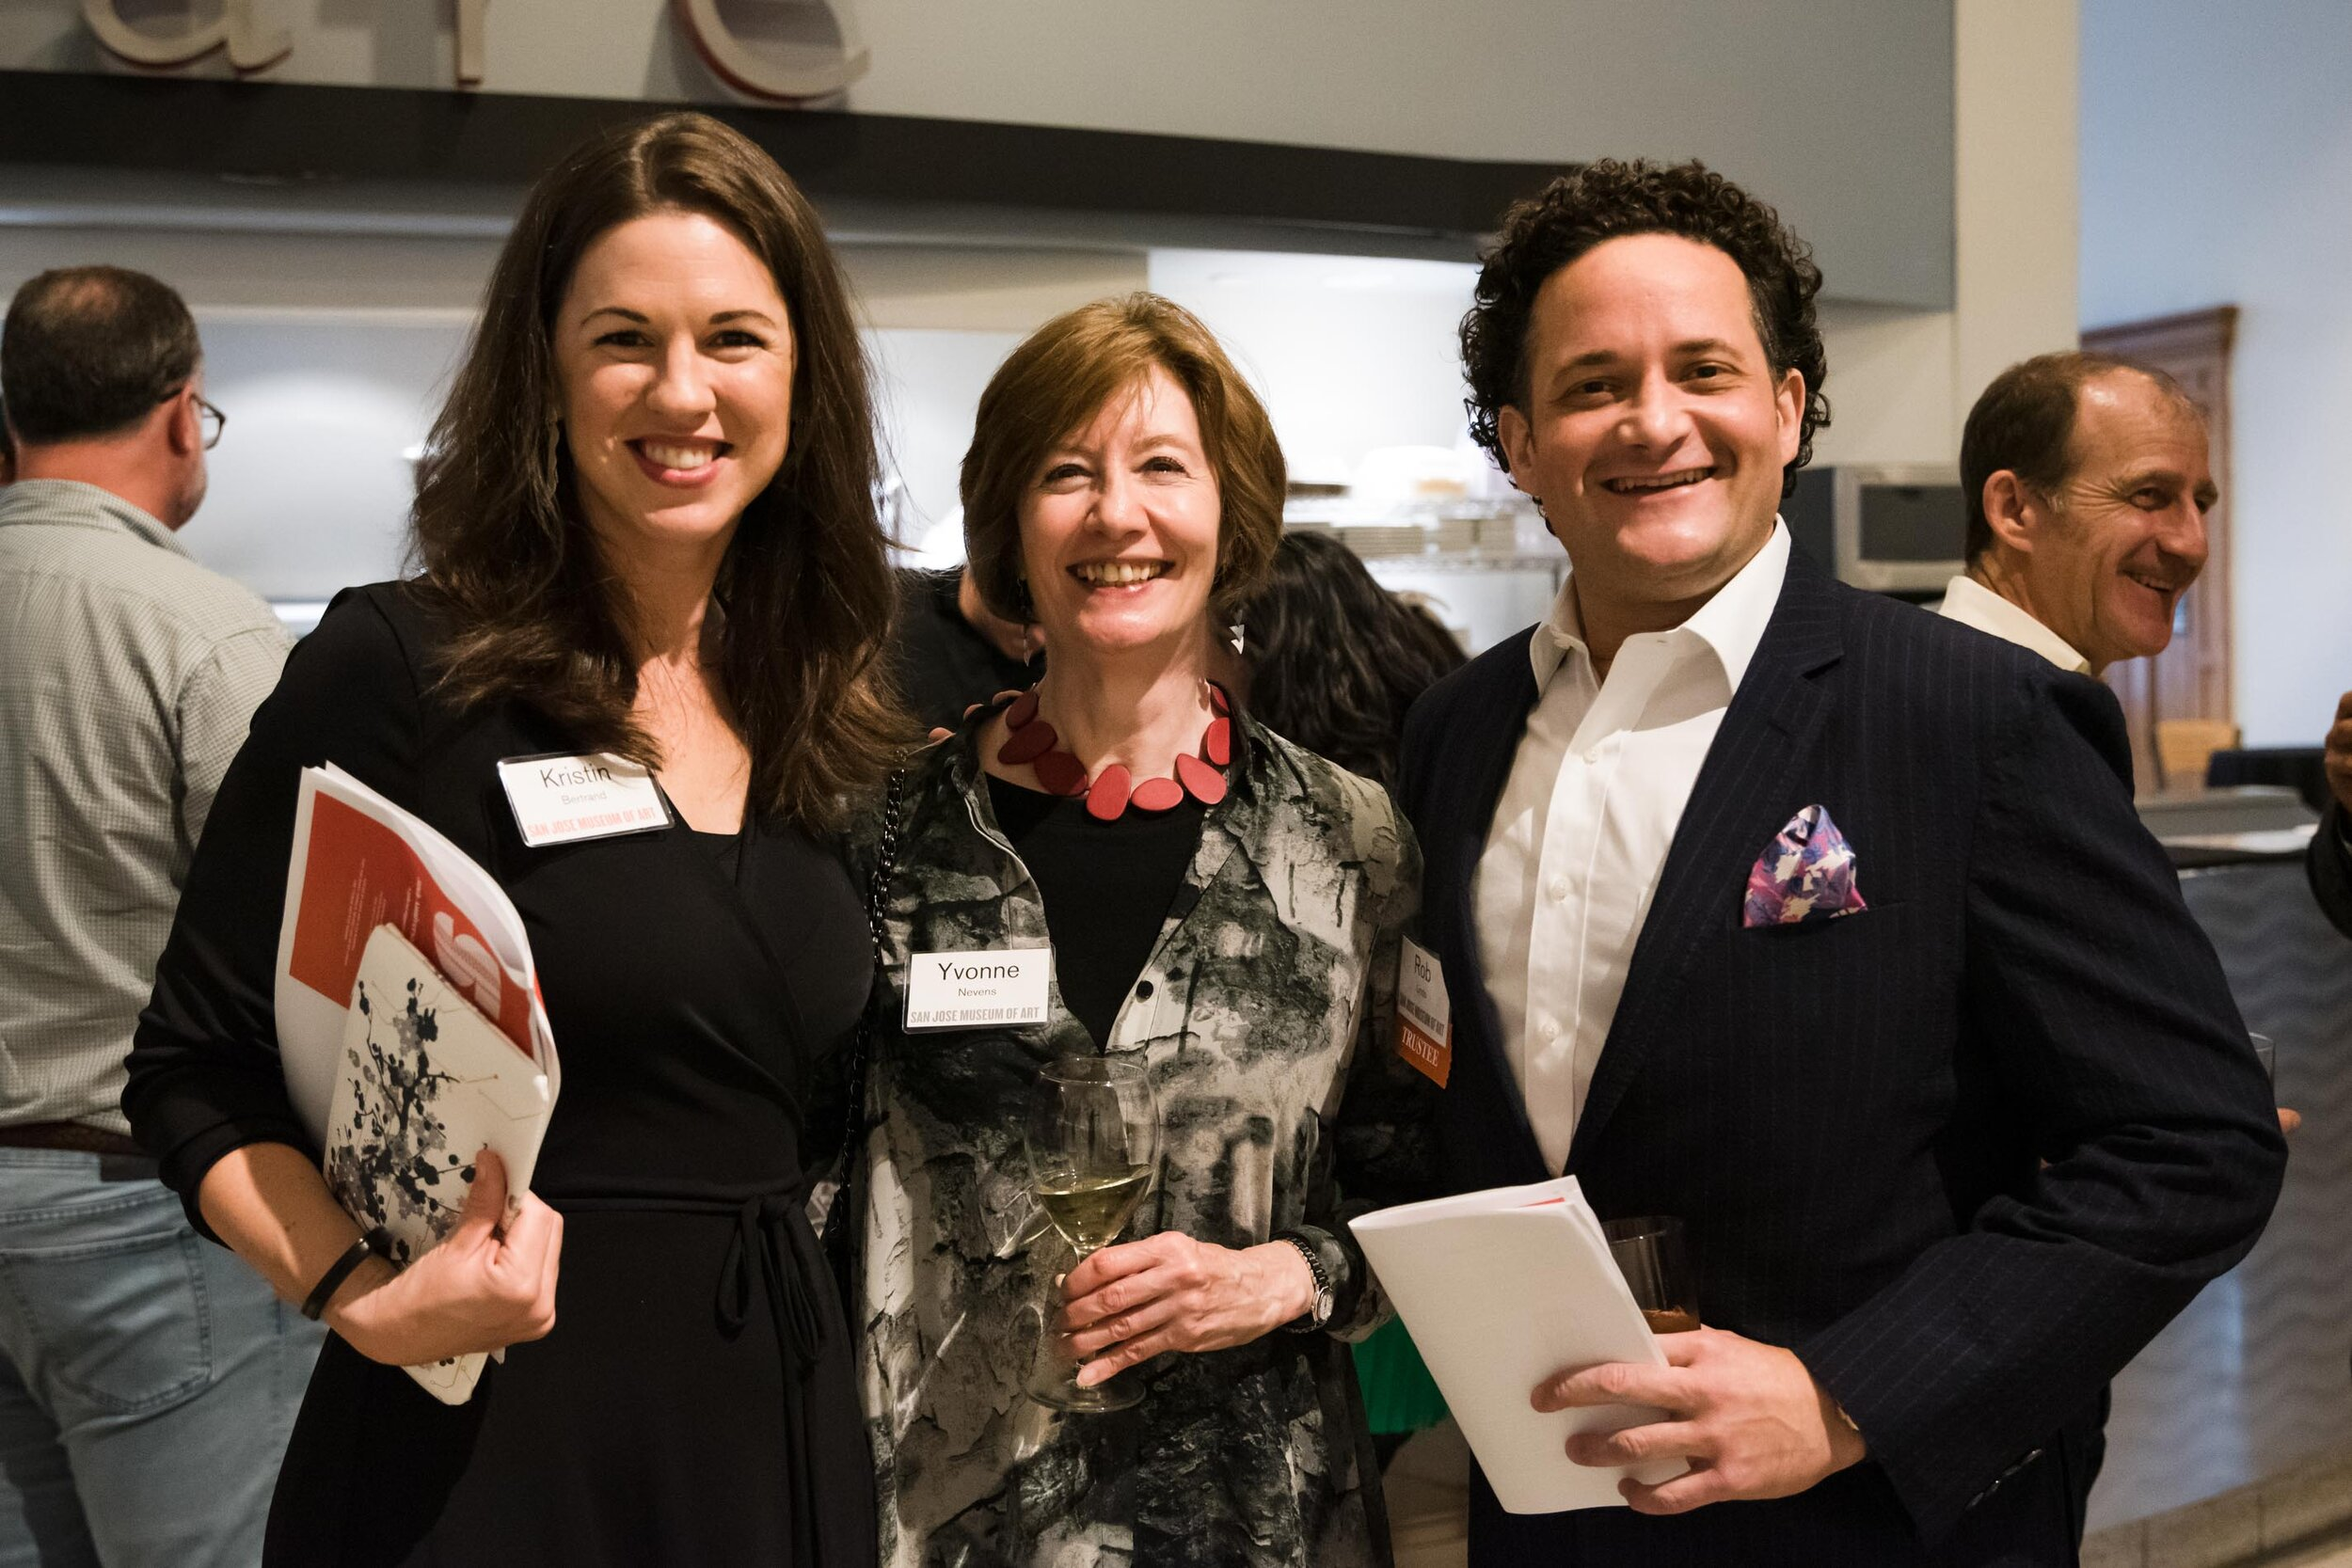 52_GalaAuctionPreview_9.16.19_photo_SharonKenney.jpg